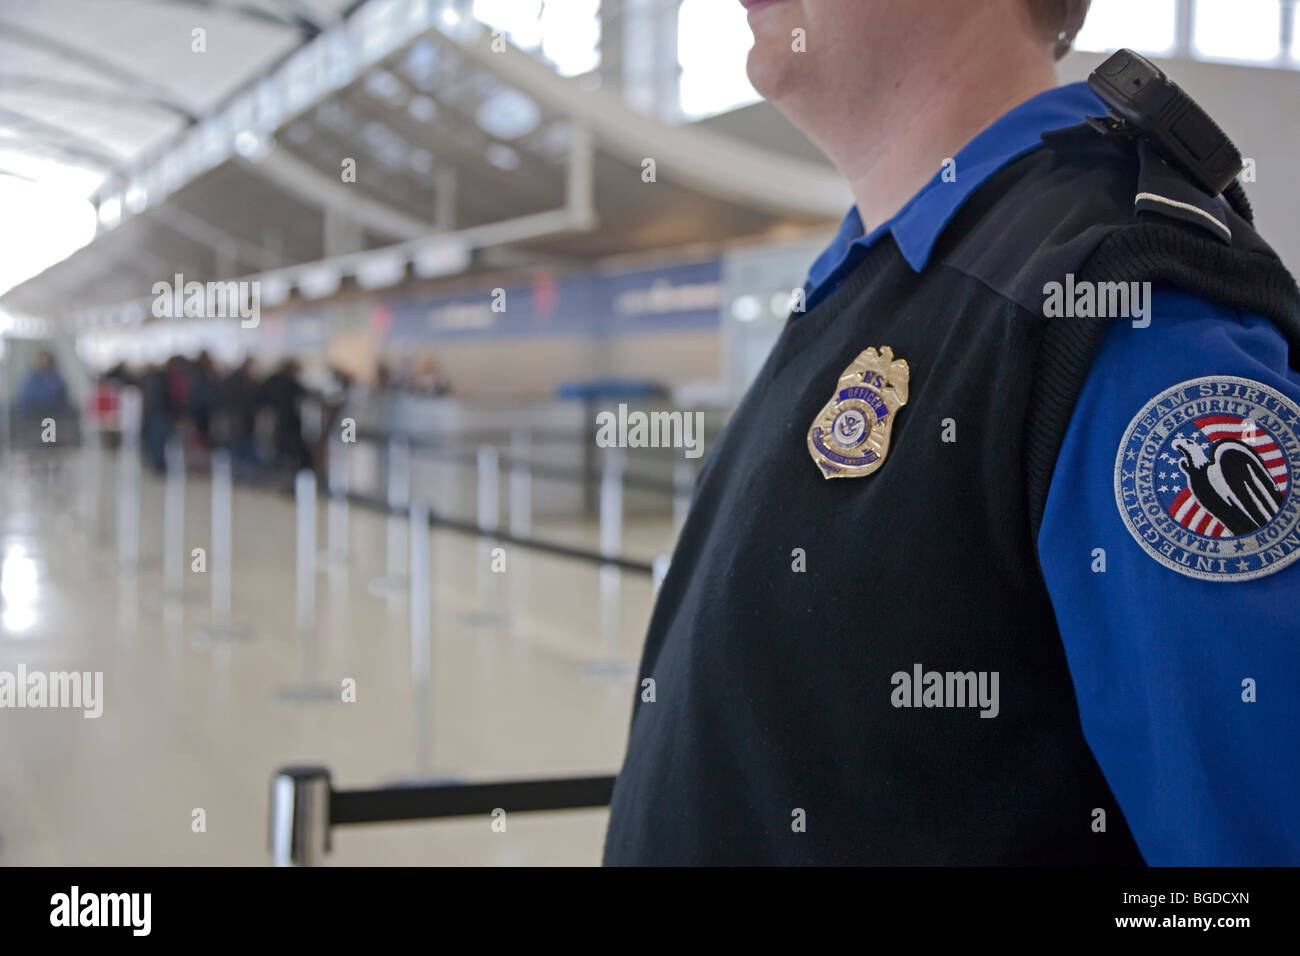 Romulus, Michigan - A security officer watches passengers arriving at Detroit Metropolitan Airport. - Stock Image